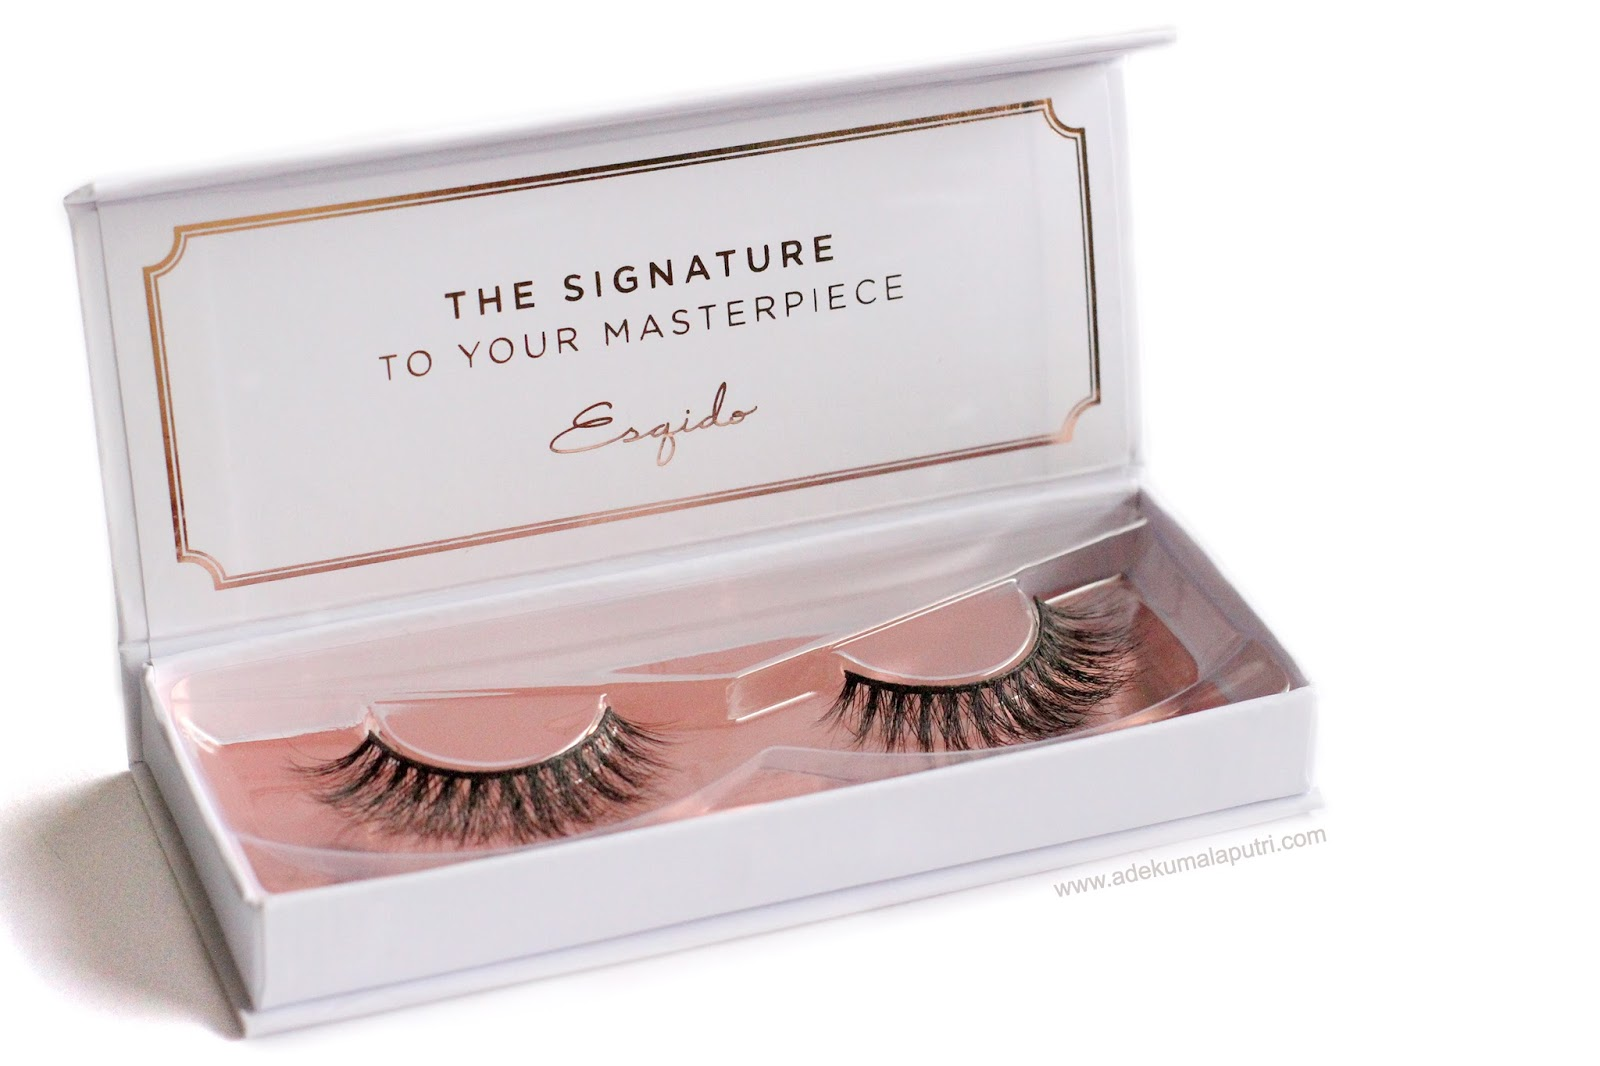 531eccf03aa In this post, I am going to share my review about Esqido mink lashes. I've  been a lot into wearing false lashes lately, so I was pretty excited to ...